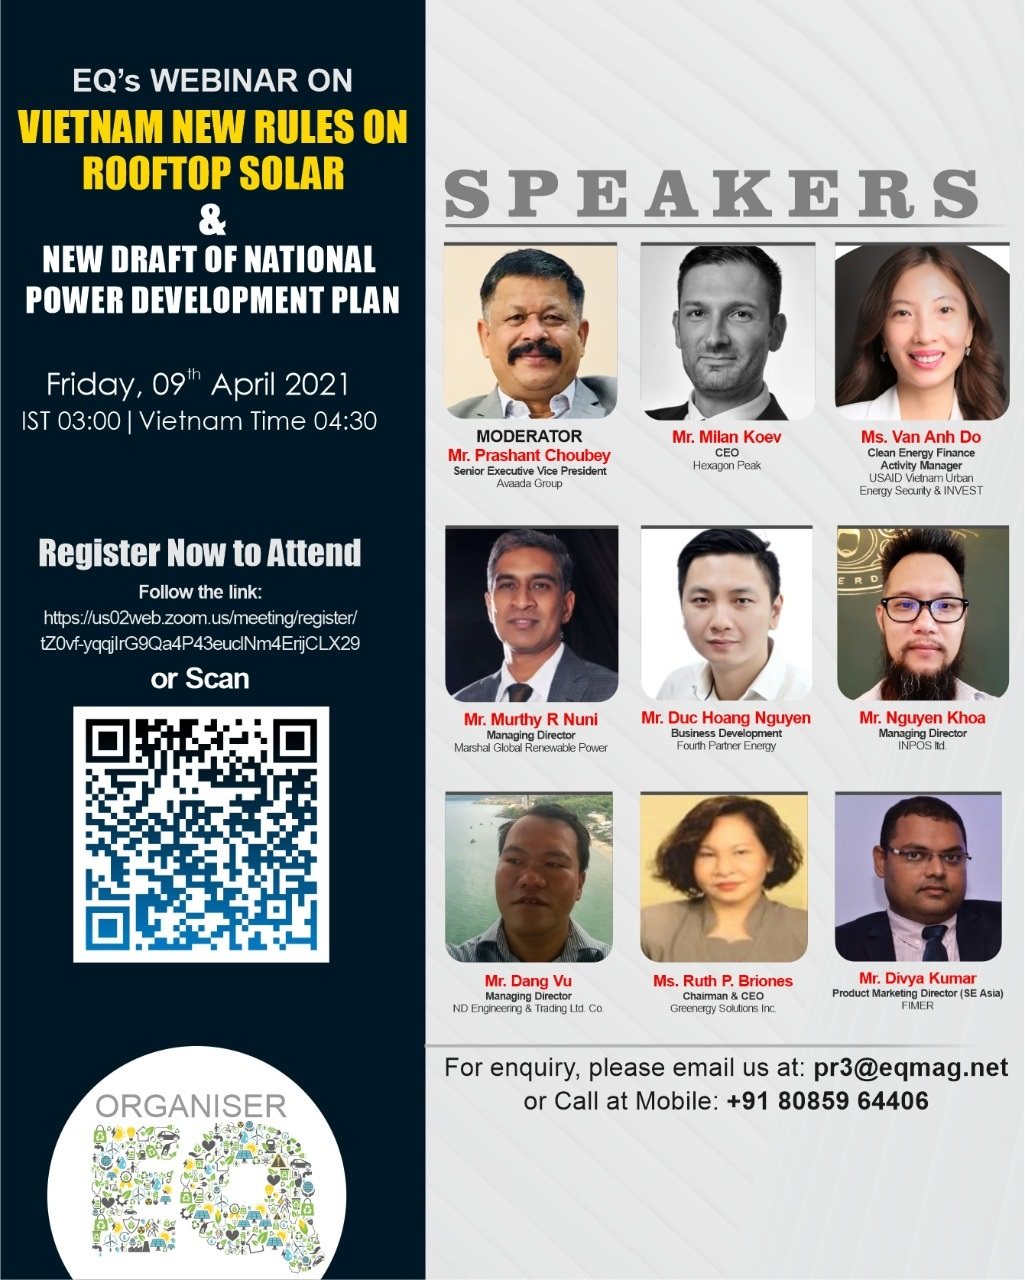 EQ Webinar on Vietnam New Rules on RoofTop Solar & New Draft of National Power Development Plan on Friday April 09th from 03:00 PM Onwards….Register Now !!!